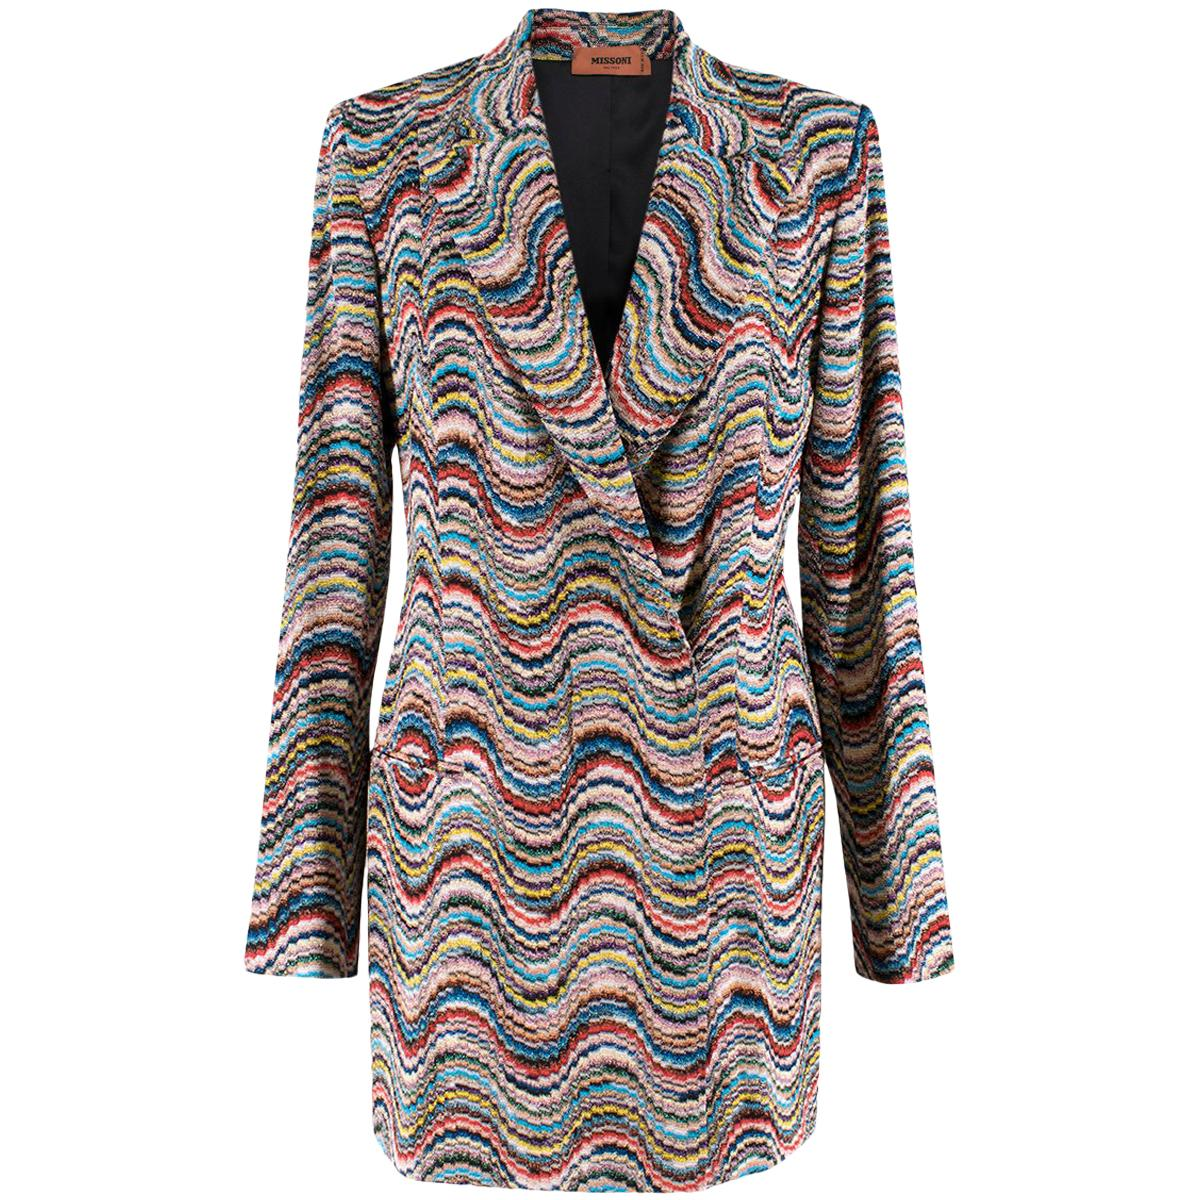 3eea157f80366 Vintage Missoni: Dresses, Sweaters & More - 495 For Sale at 1stdibs